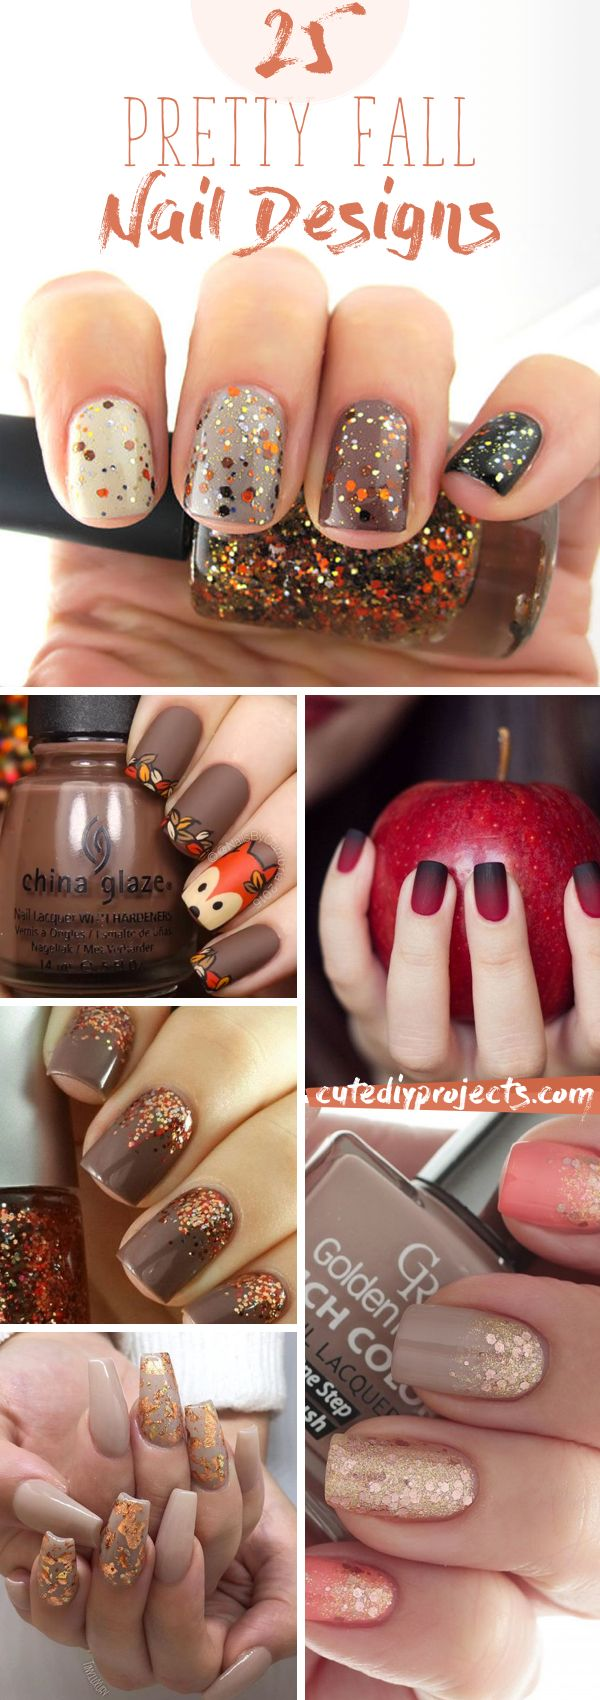 best nail fantasies images on pinterest cute nails nail